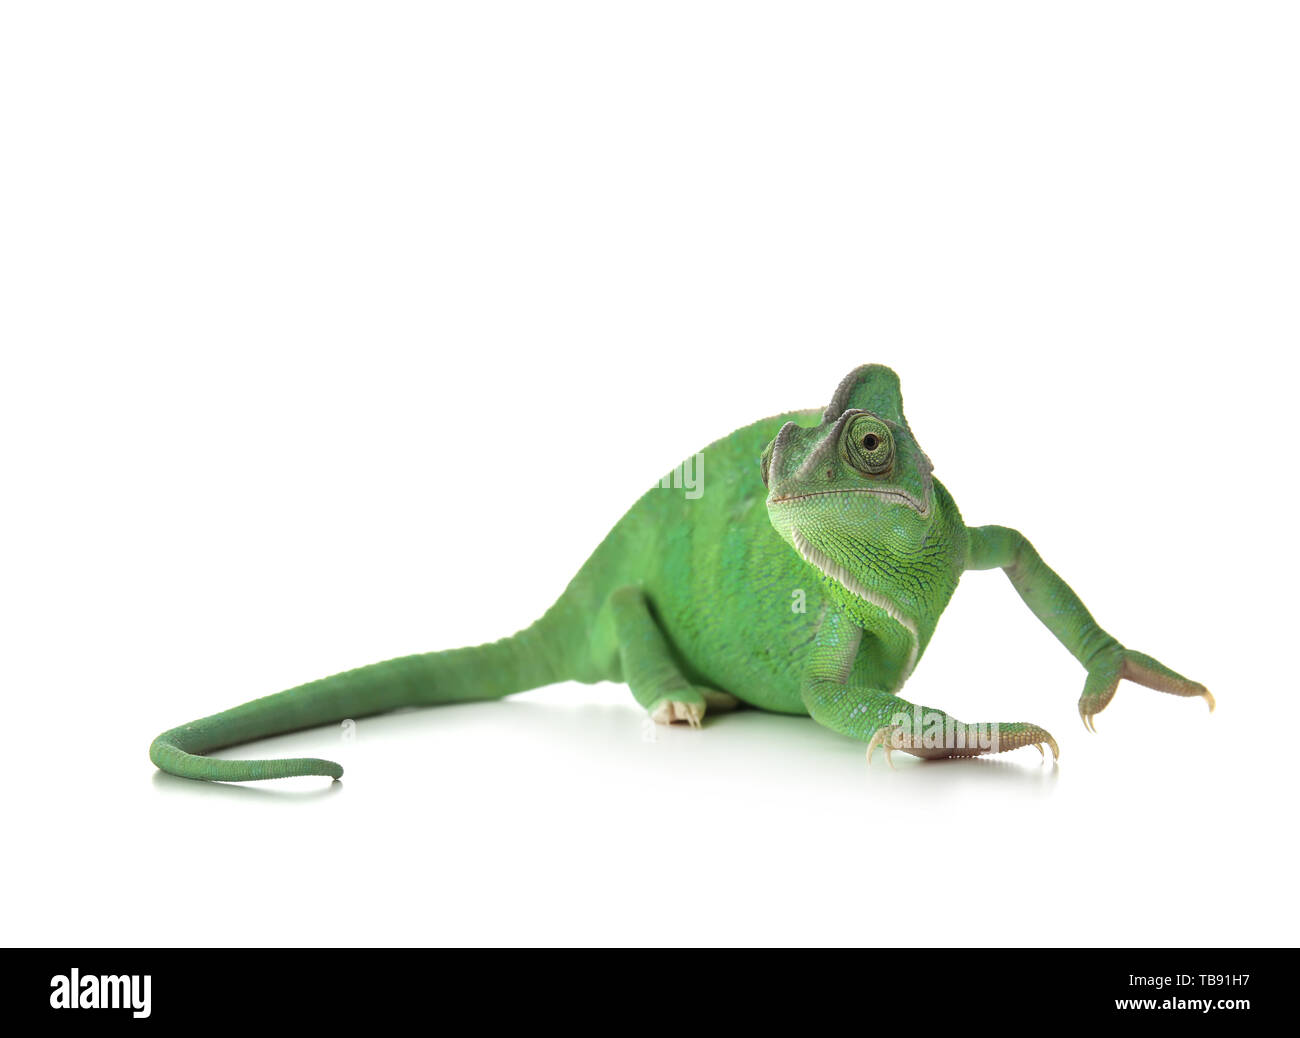 Cute green chameleon on white background Stock Photo